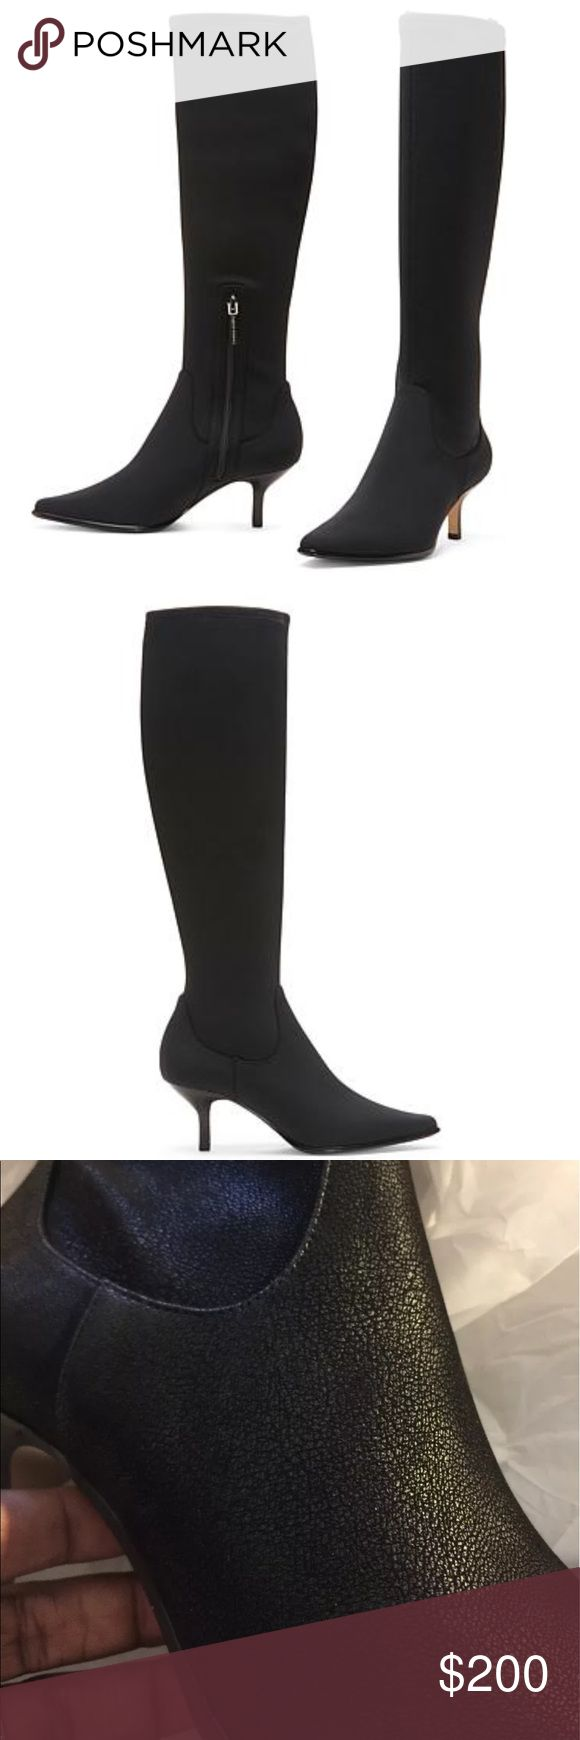 "NEW🎉 DONALD J. PLINER KITTEN BOOT ❌NO TRADES❌ BRAND NEW WOMENS EXQUISITE HIGH LEG BOOTS WITH KITTEN HEEL. SUPER SEXY CAN BE WORN YEAR ROUND. BLACK WITH 2.5"" heel. As soon as you walk into the room with these boots on everyone will know that you are a woman with taste. Donald J. PLINER is no regular shoe brand it is one of the elite shoe lines out there. The material stretches so it CAN go over MOST Calves.  Comes with box. Light quality Man made upper material, with kitten heel and fits…"